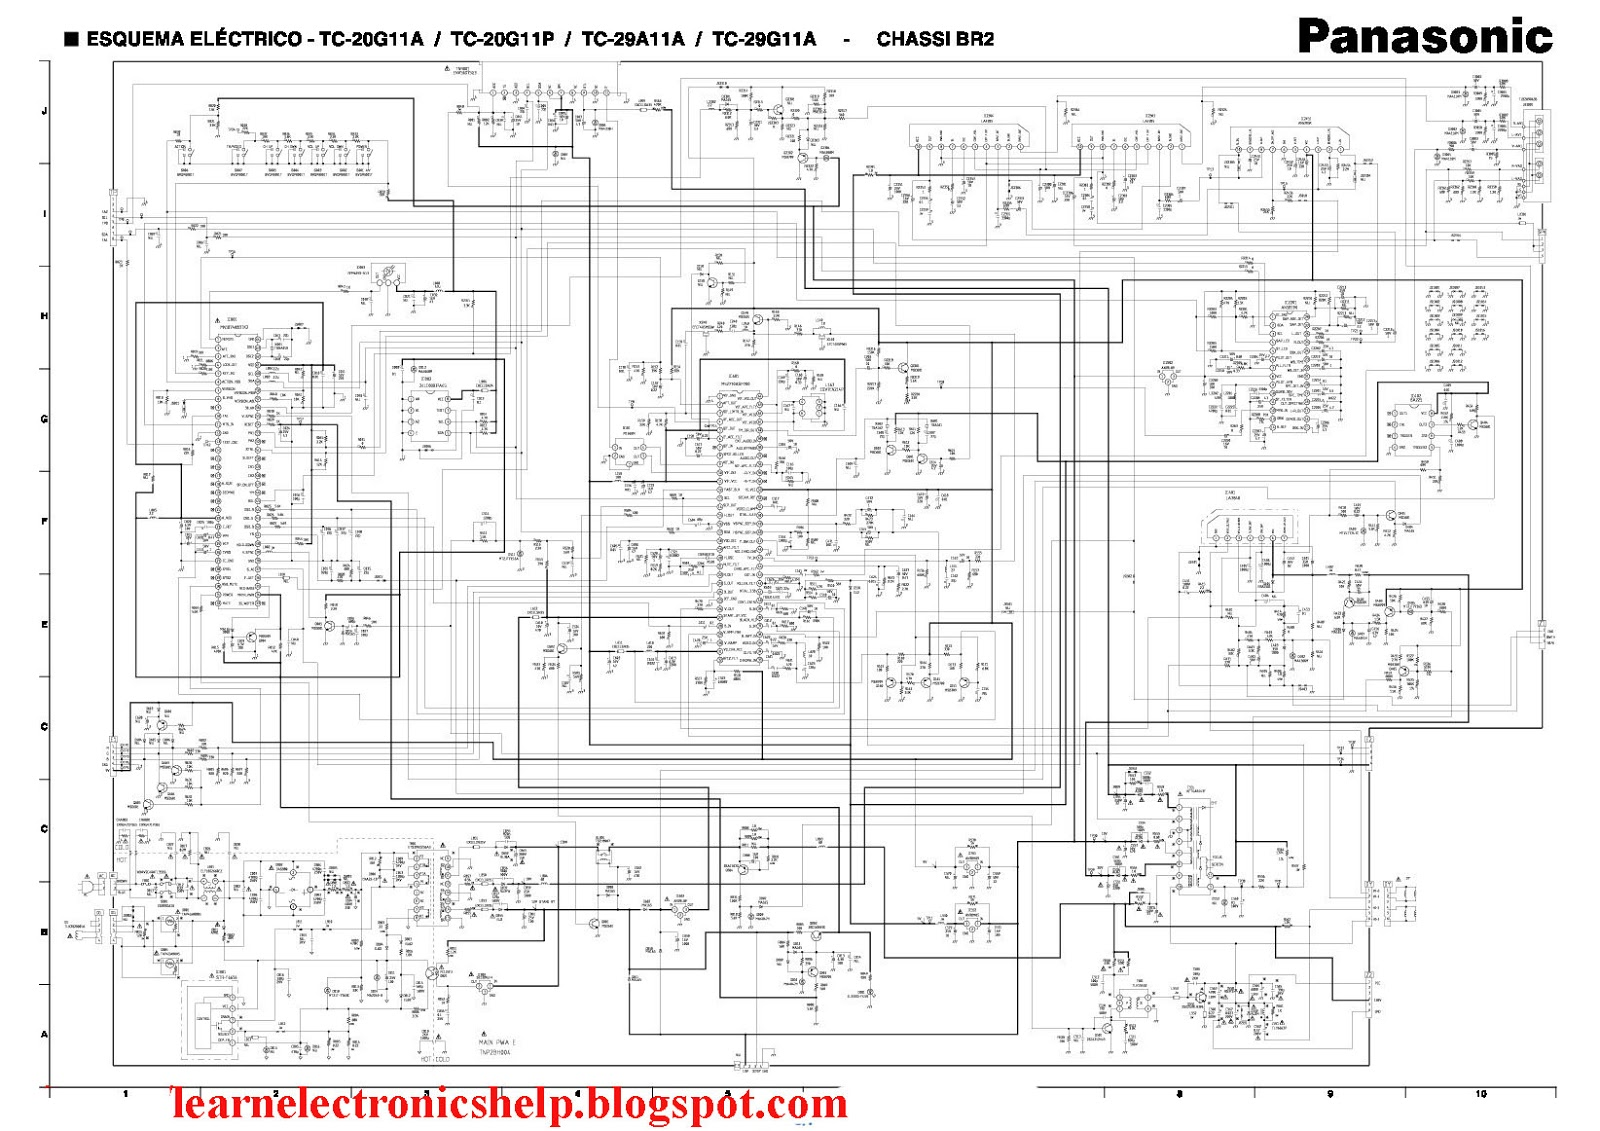 panasonic tv repair wiring diagram | 2019 ebook library panasonic tv wiring diagrams scott tv wiring diagrams